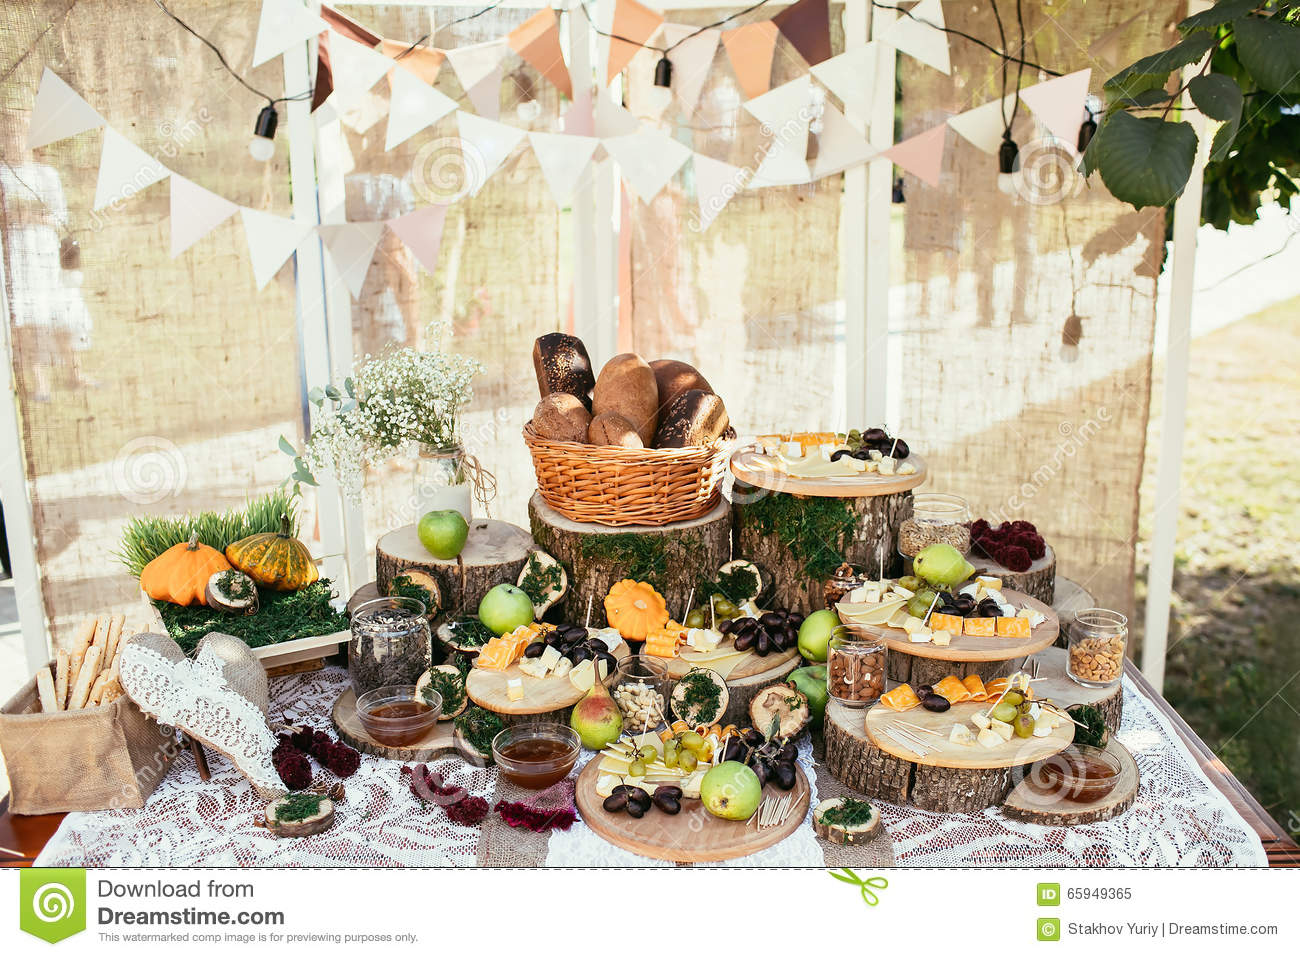 stock photo beach destination wedding candy bar deserts pastry image wedding candy bar Beach destination wedding candy bar